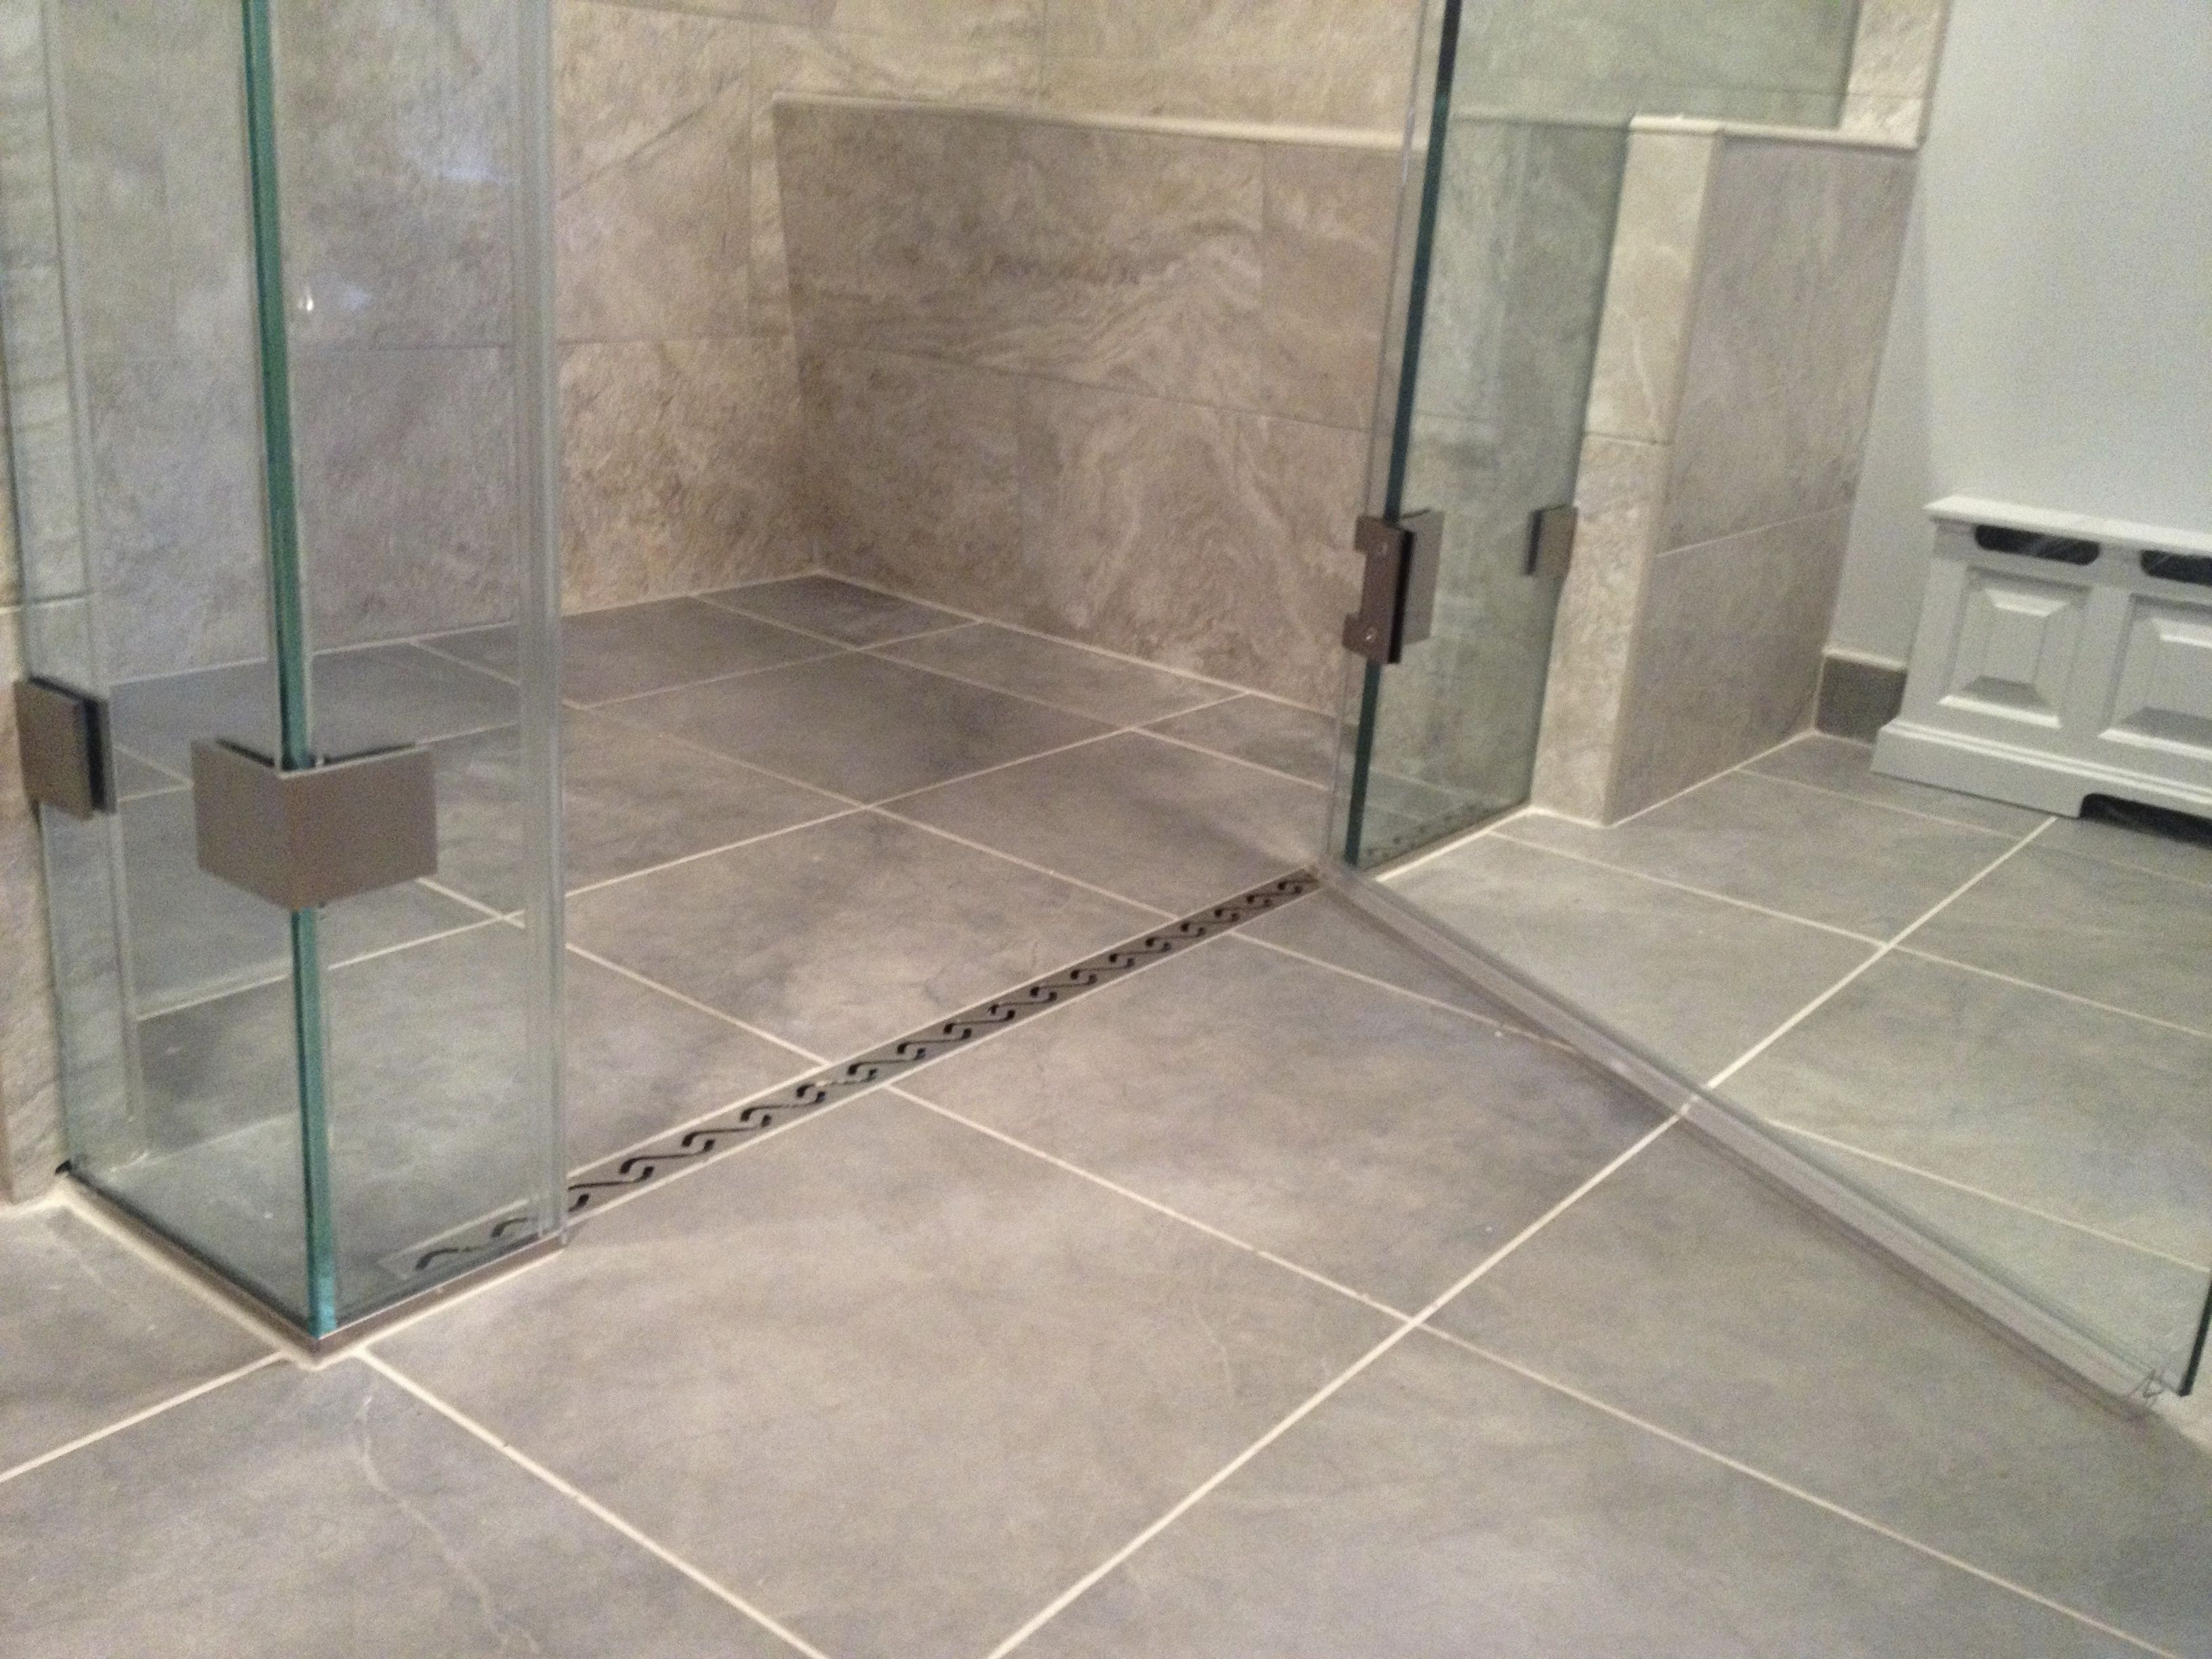 Curbless shower with a linear drain. | badkamer | Pinterest ...